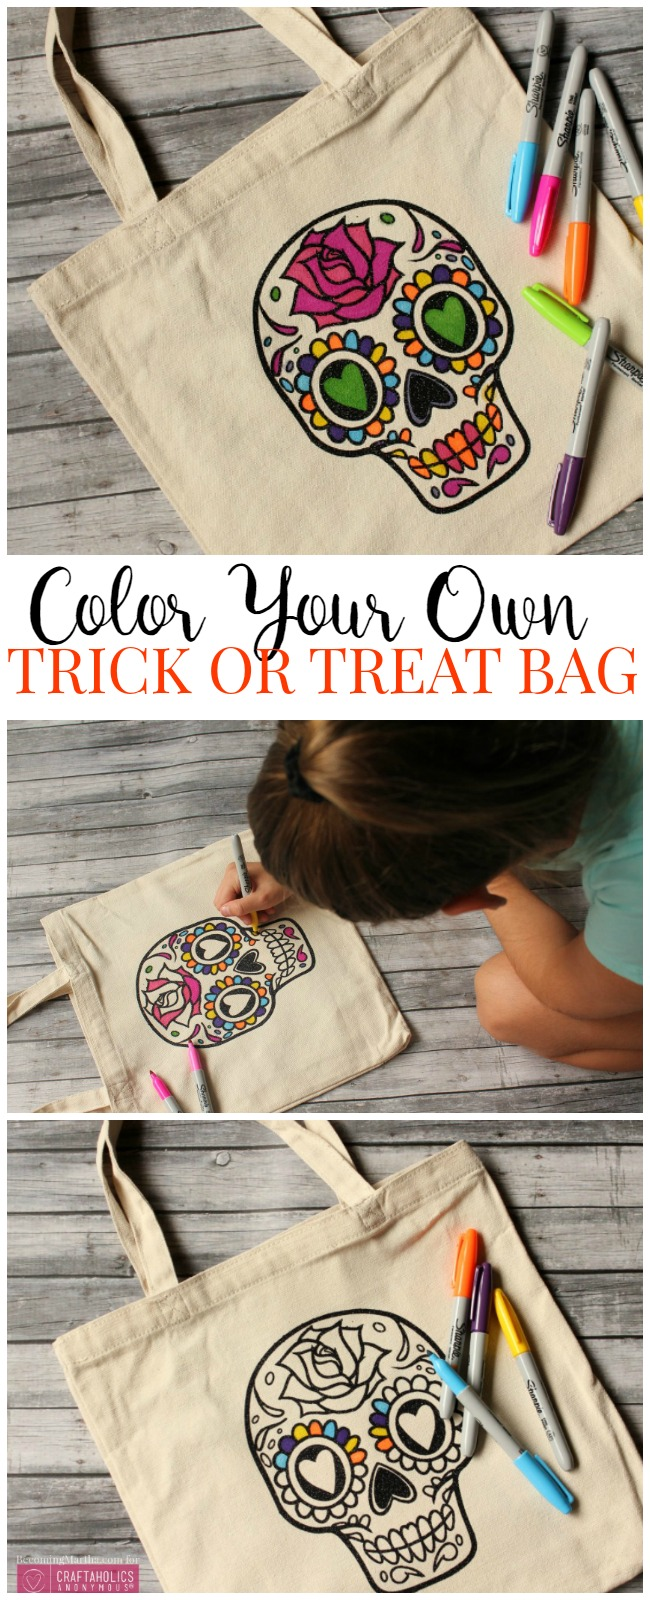 How to make your own customized Color Your Own Trick or Treat Bag for candy this year!